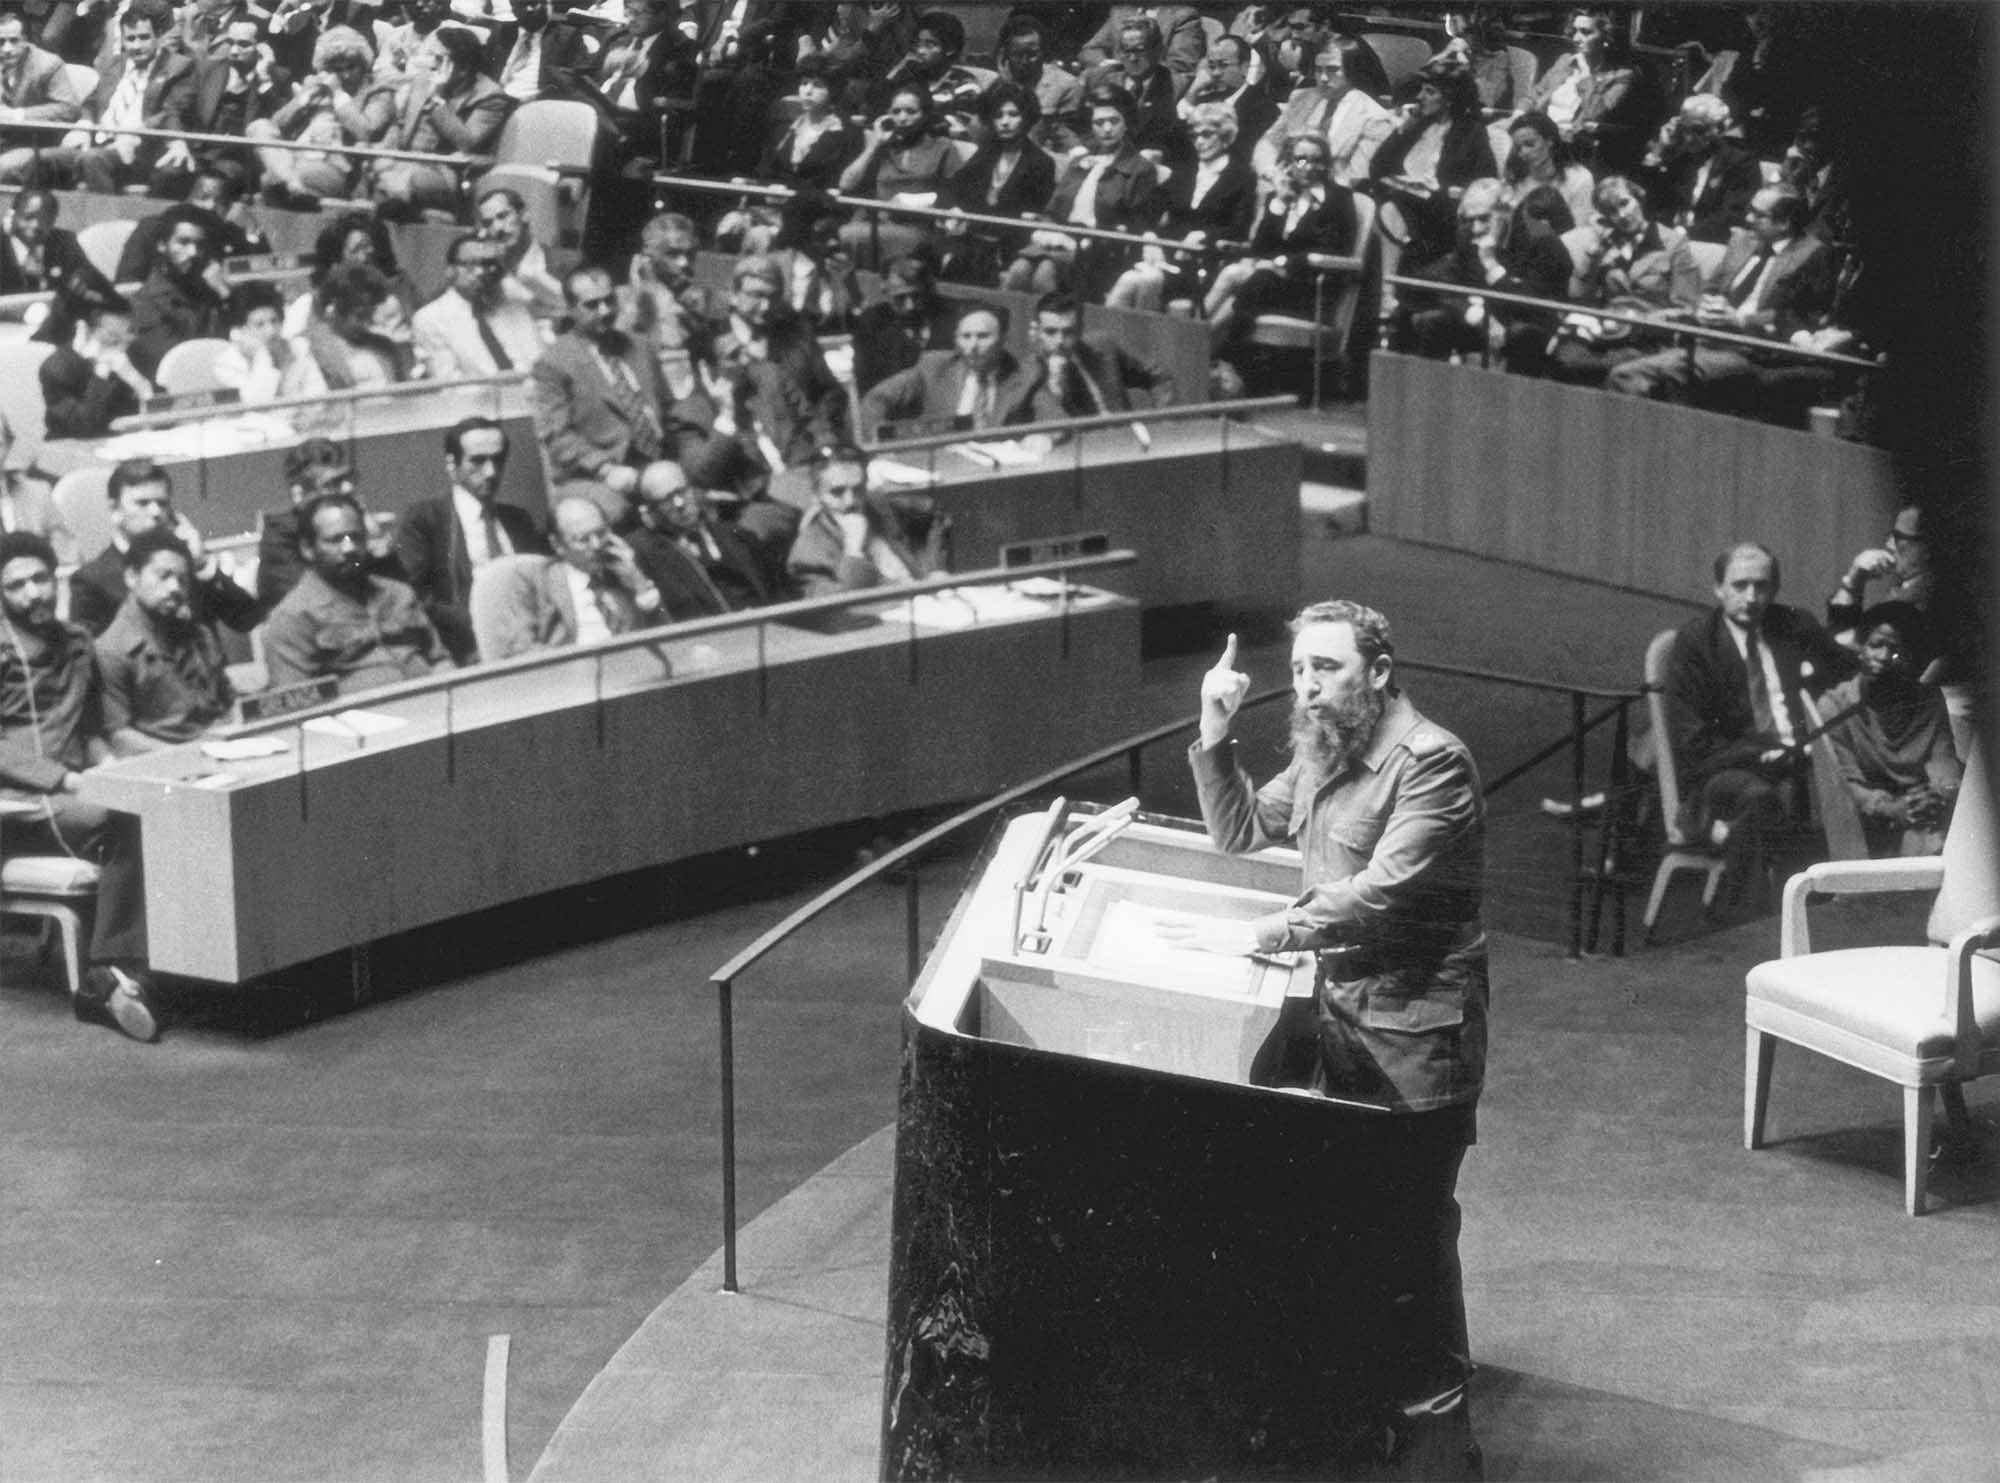 Fidel Castro speaking at the United Nations